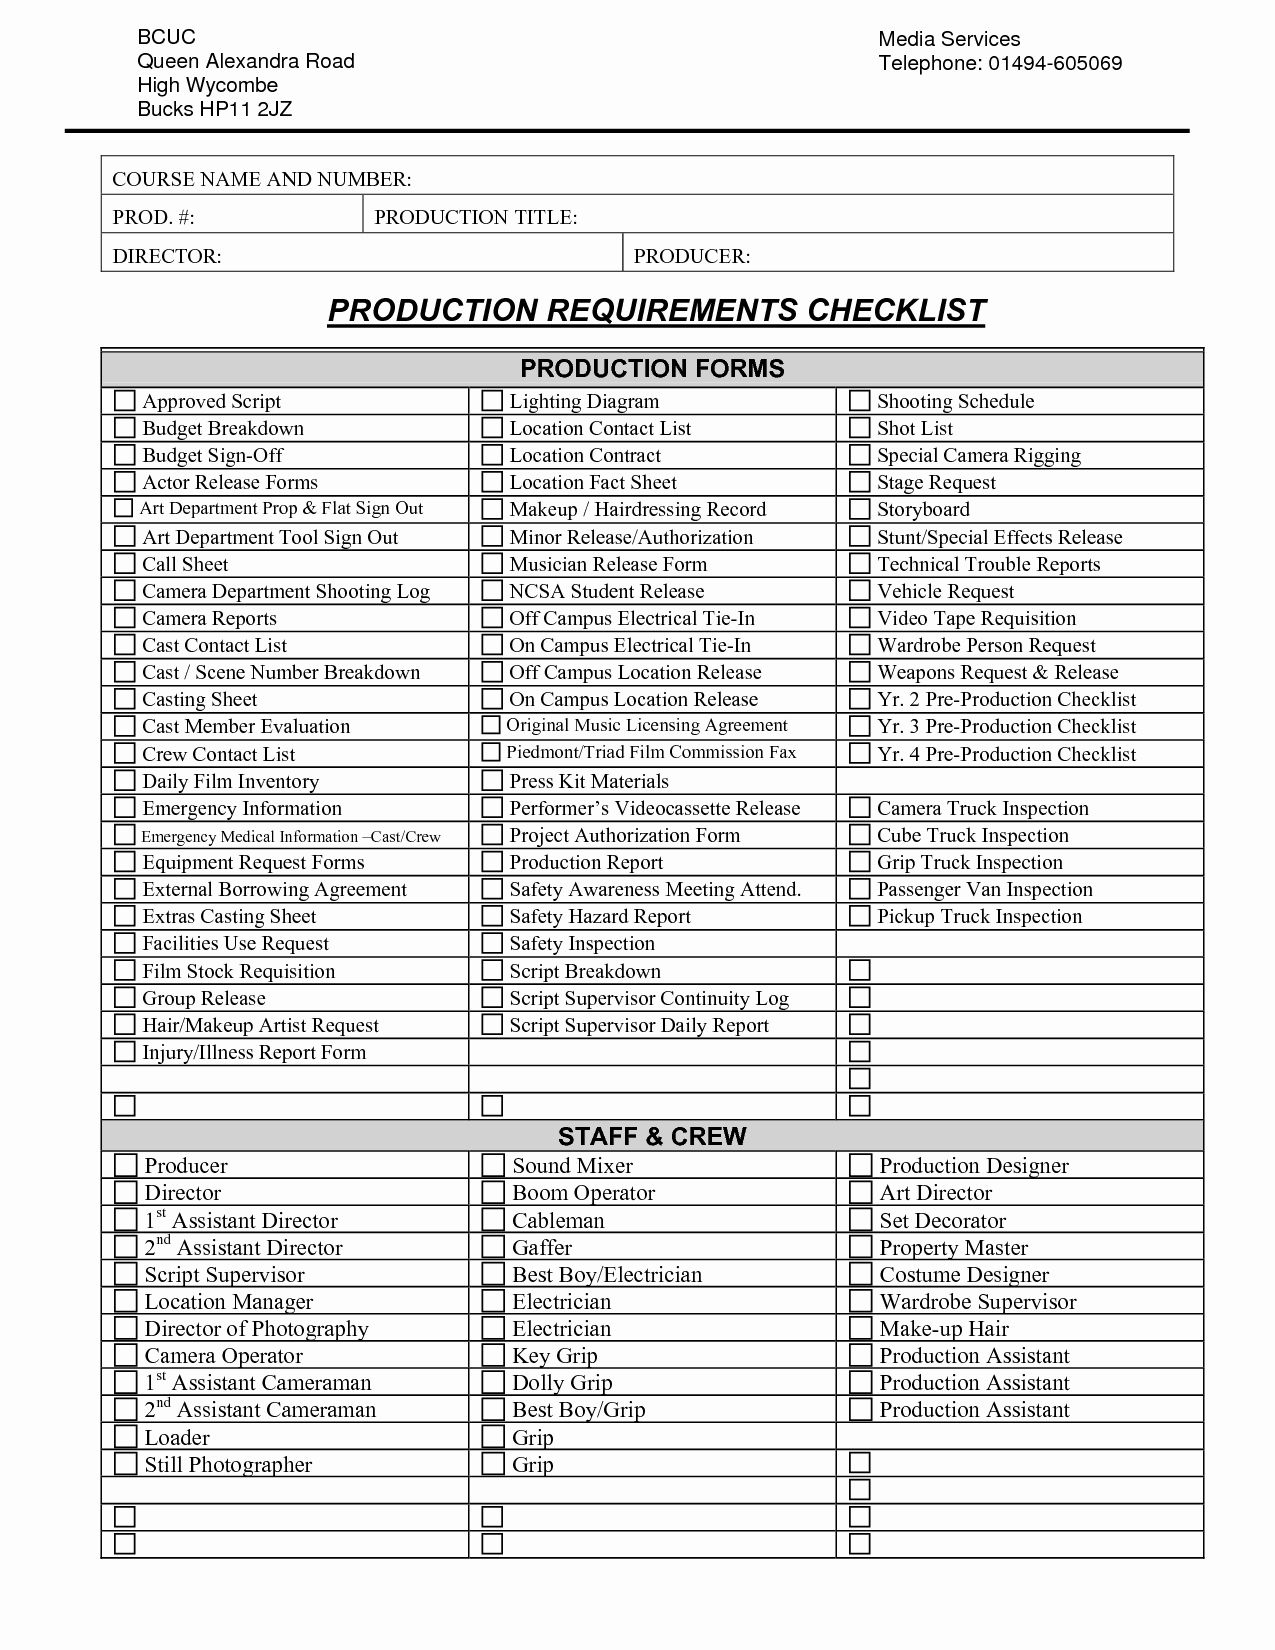 Film Schedule Template New Pin By Lucy Huezo On Pany Schedule Template How To Plan Templates